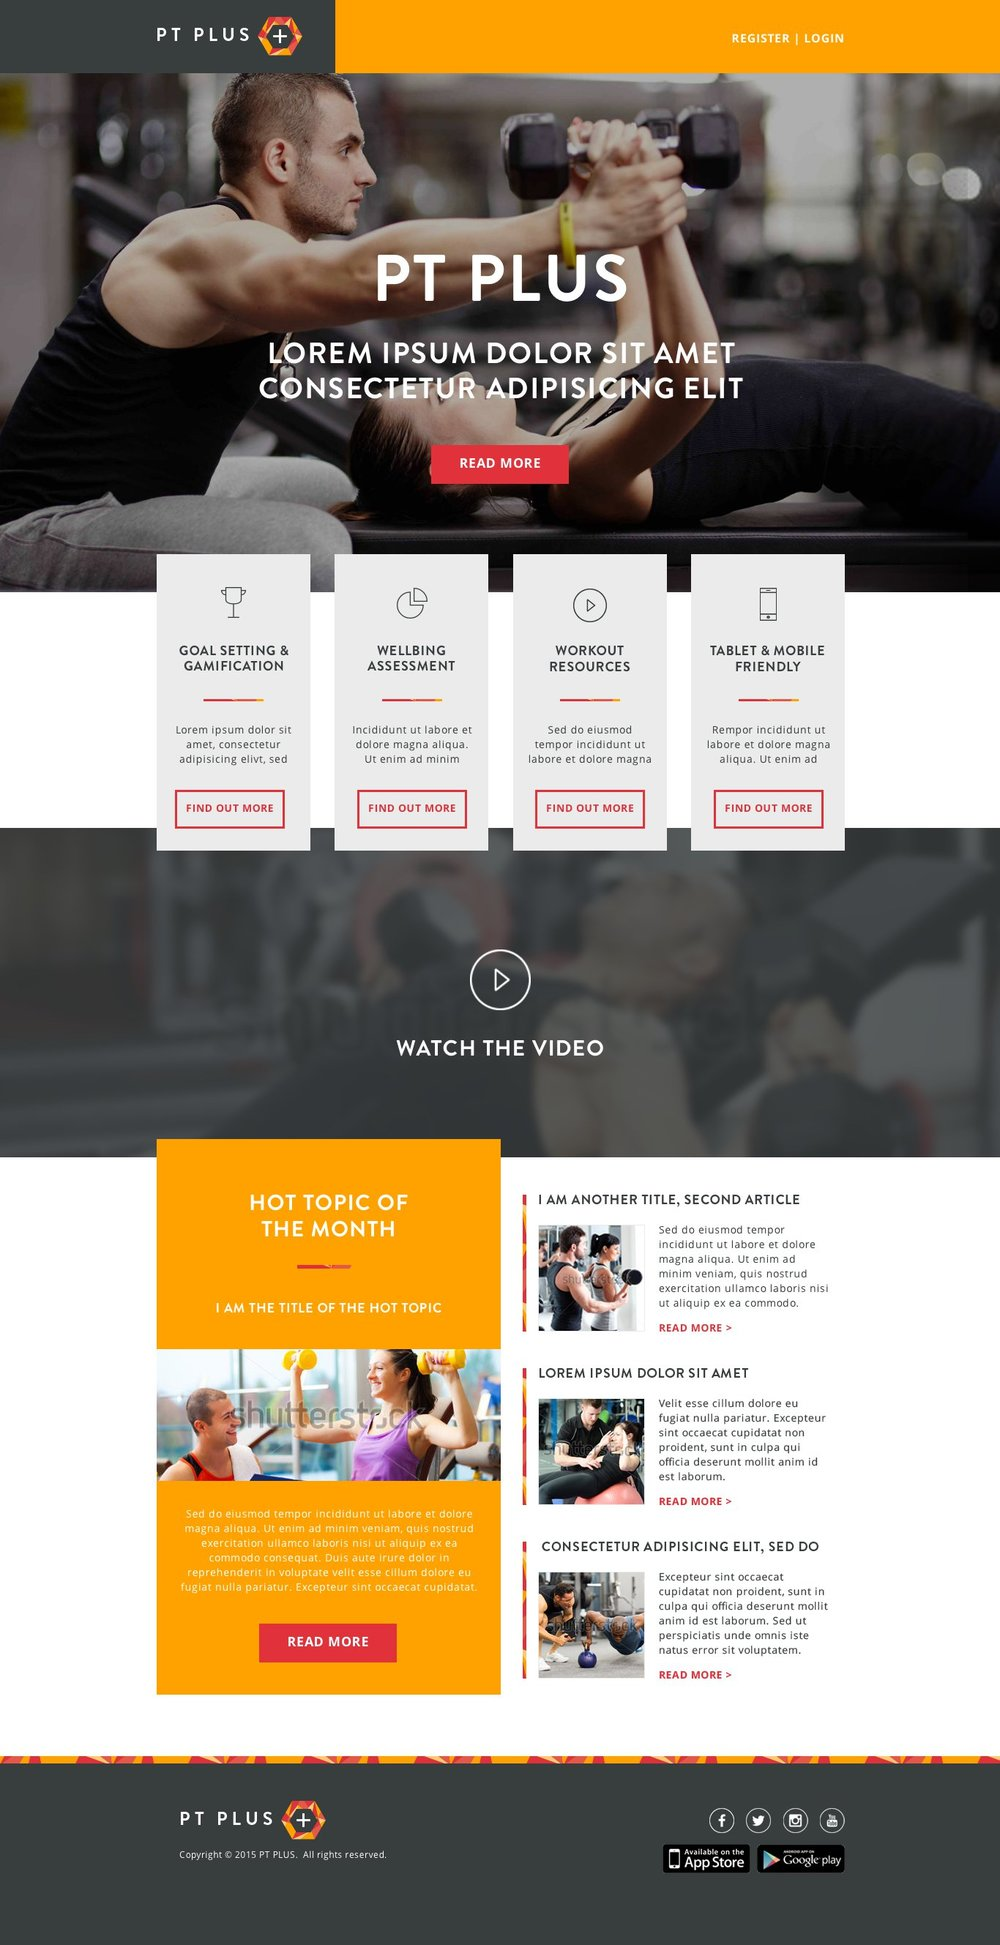 PT PLUS - website theme design